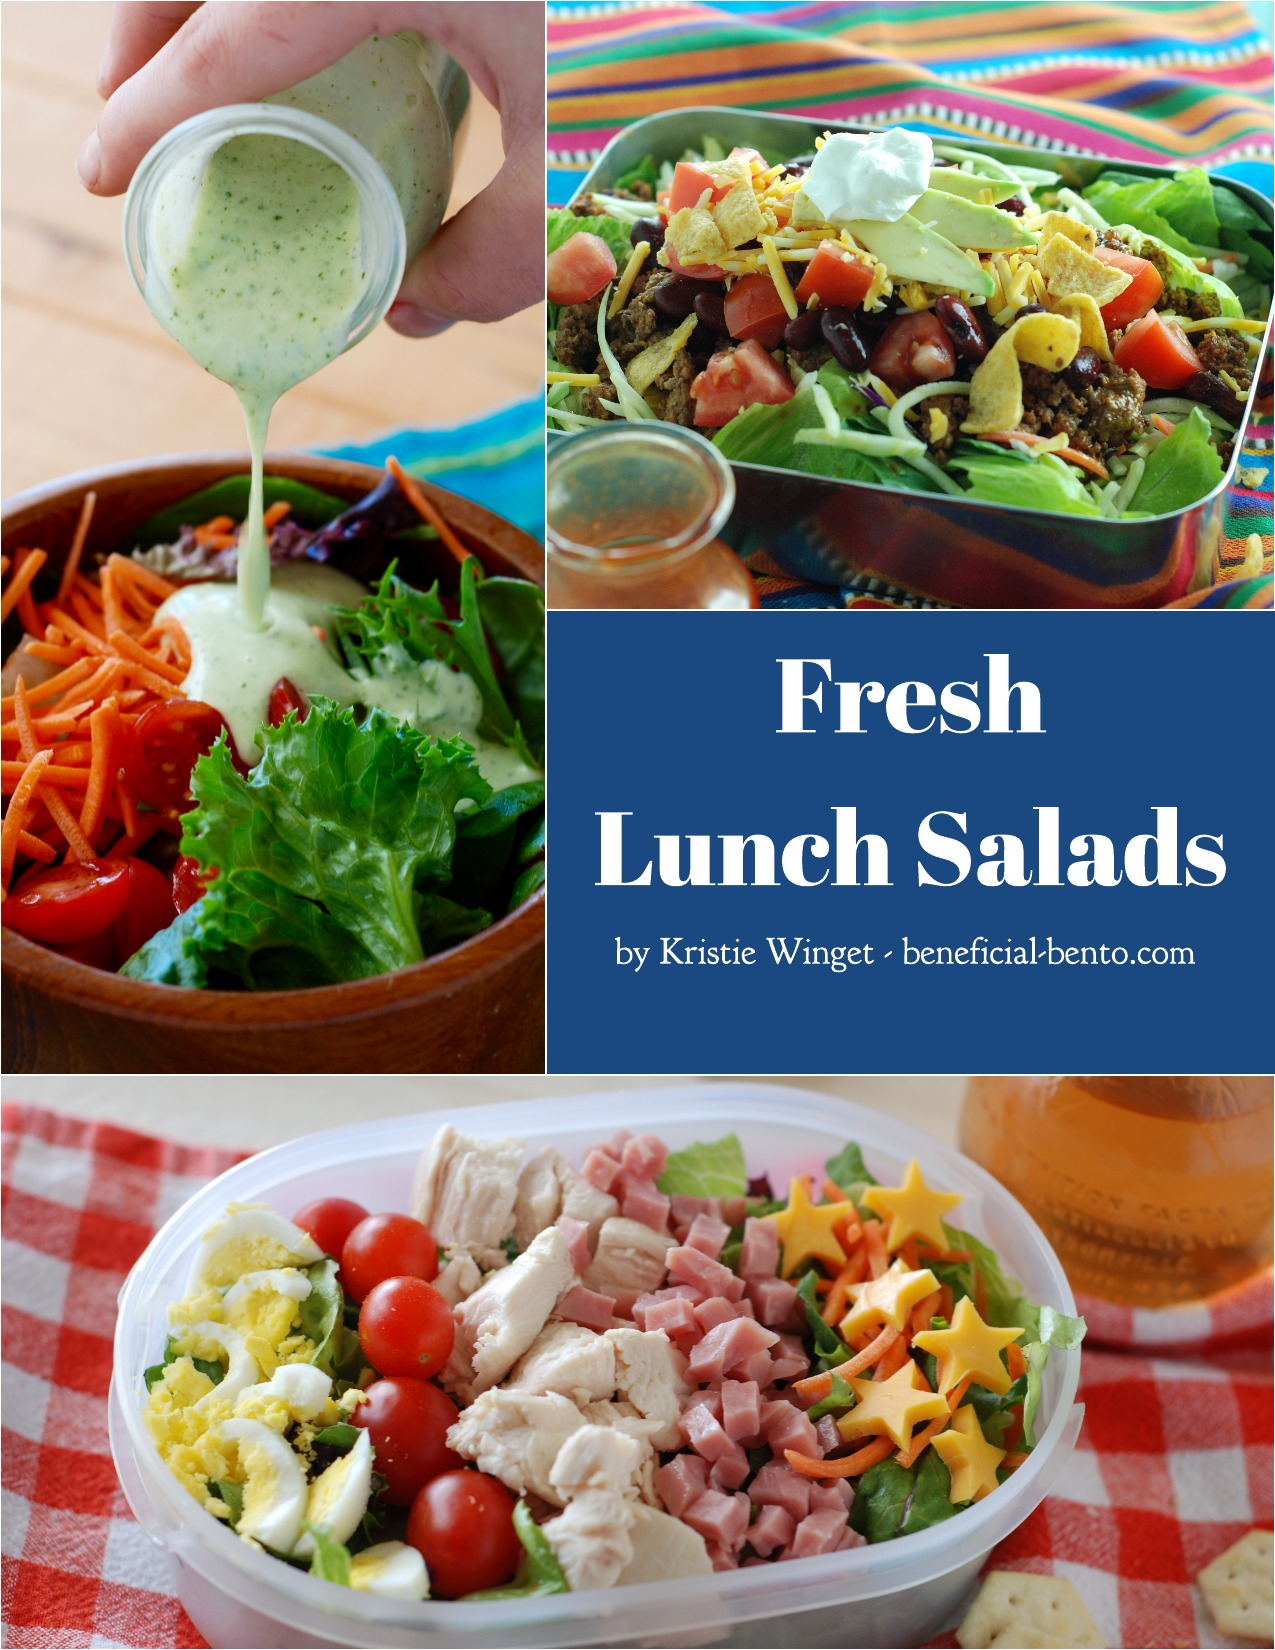 Fresh lunch salads recipe book now available beneficial bento buy my new book fresh lunch salads with 25 recipes for dressings tossed salads forumfinder